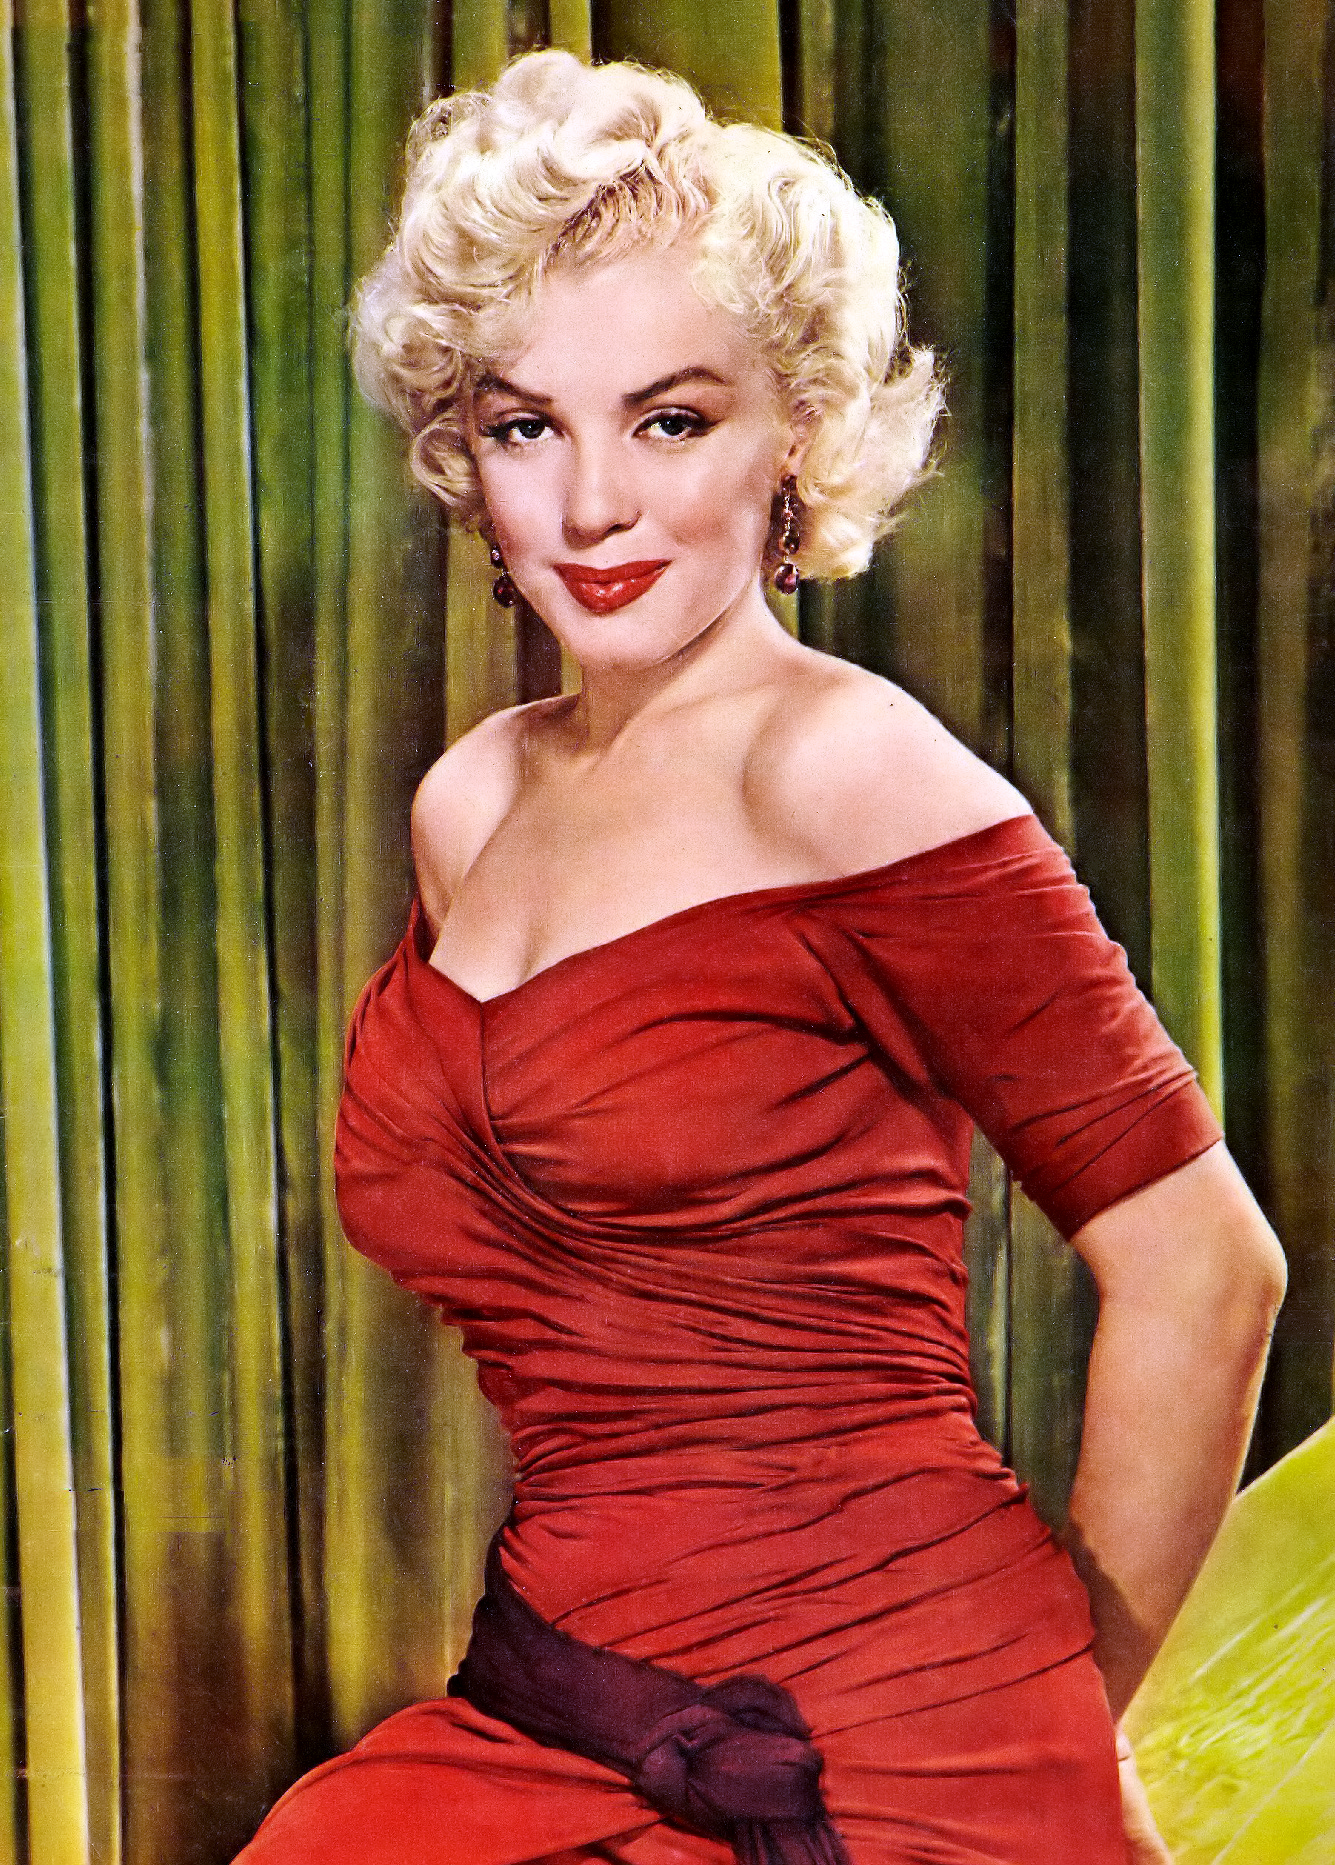 June Birthday Icon: Marilyn Monroe